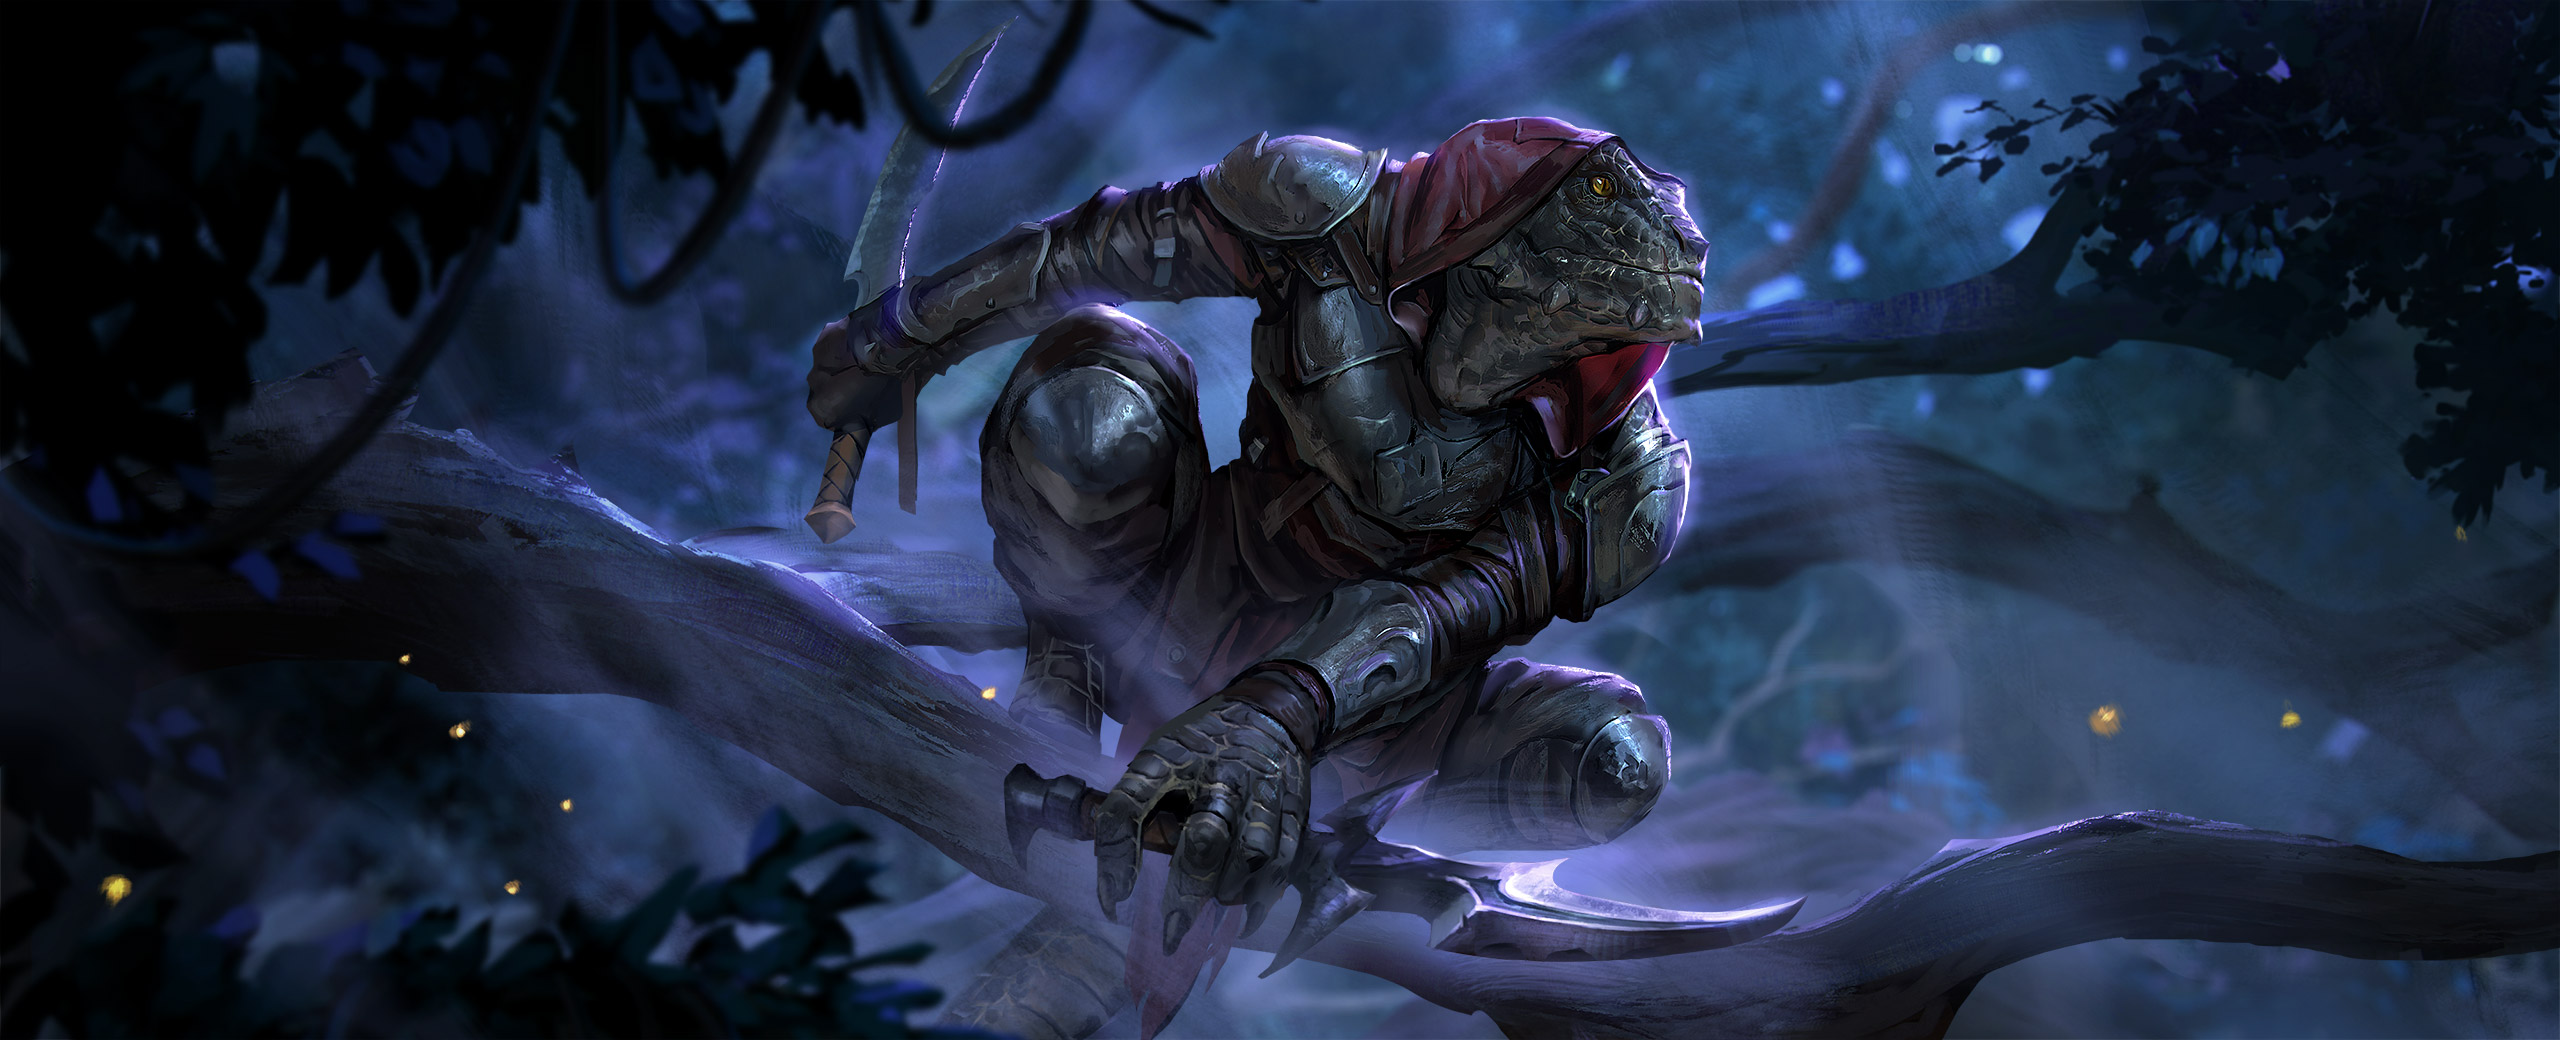 The Elder Scrolls: Legends: Der Fall der Dunklen Bruderschaft